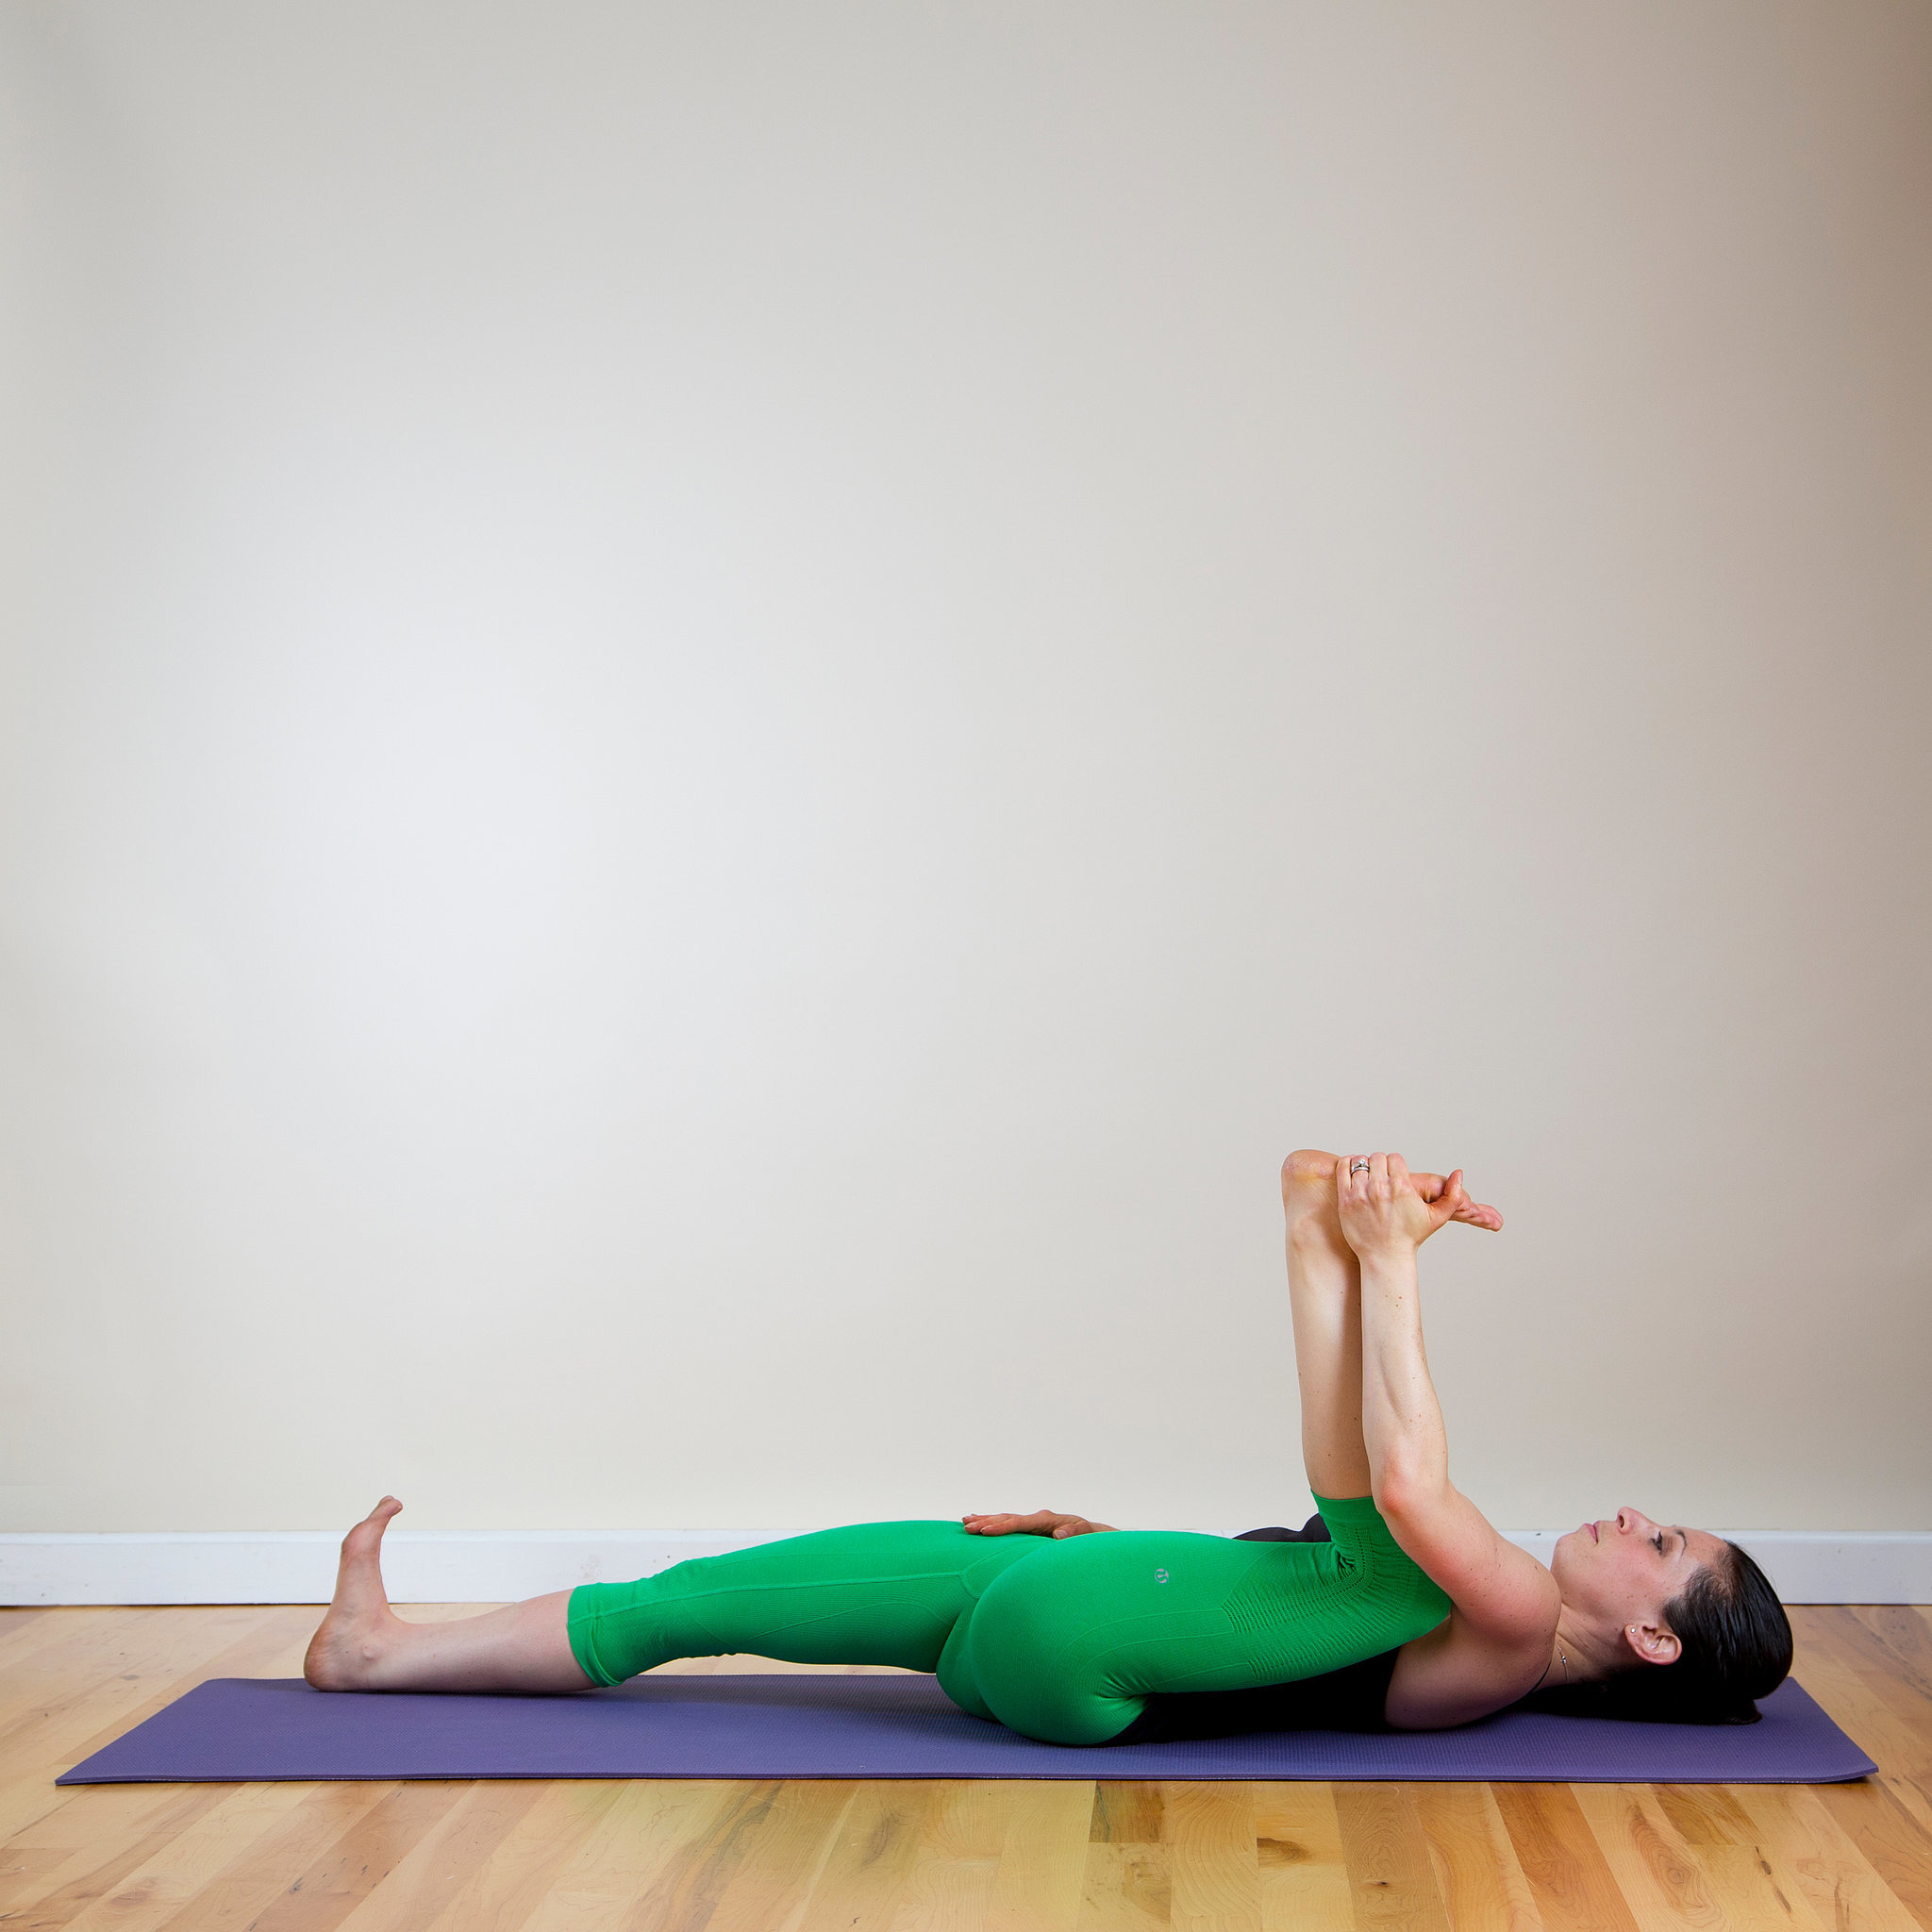 Yoga poses to help with lower back pain popsugar fitness for Floor yoga stretches